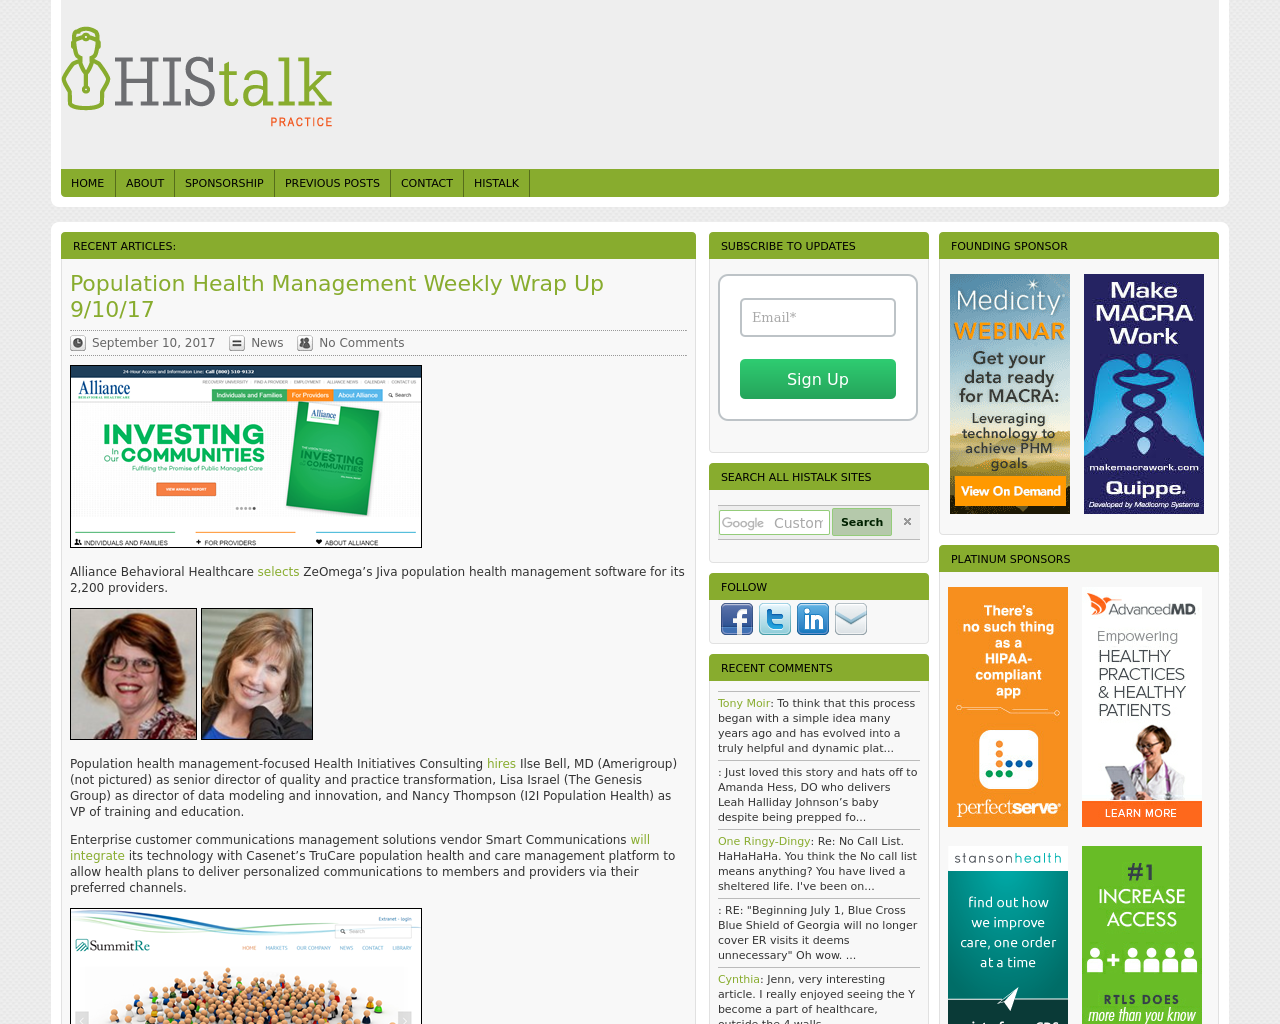 HIStalk-Practice-Advertising-Reviews-Pricing